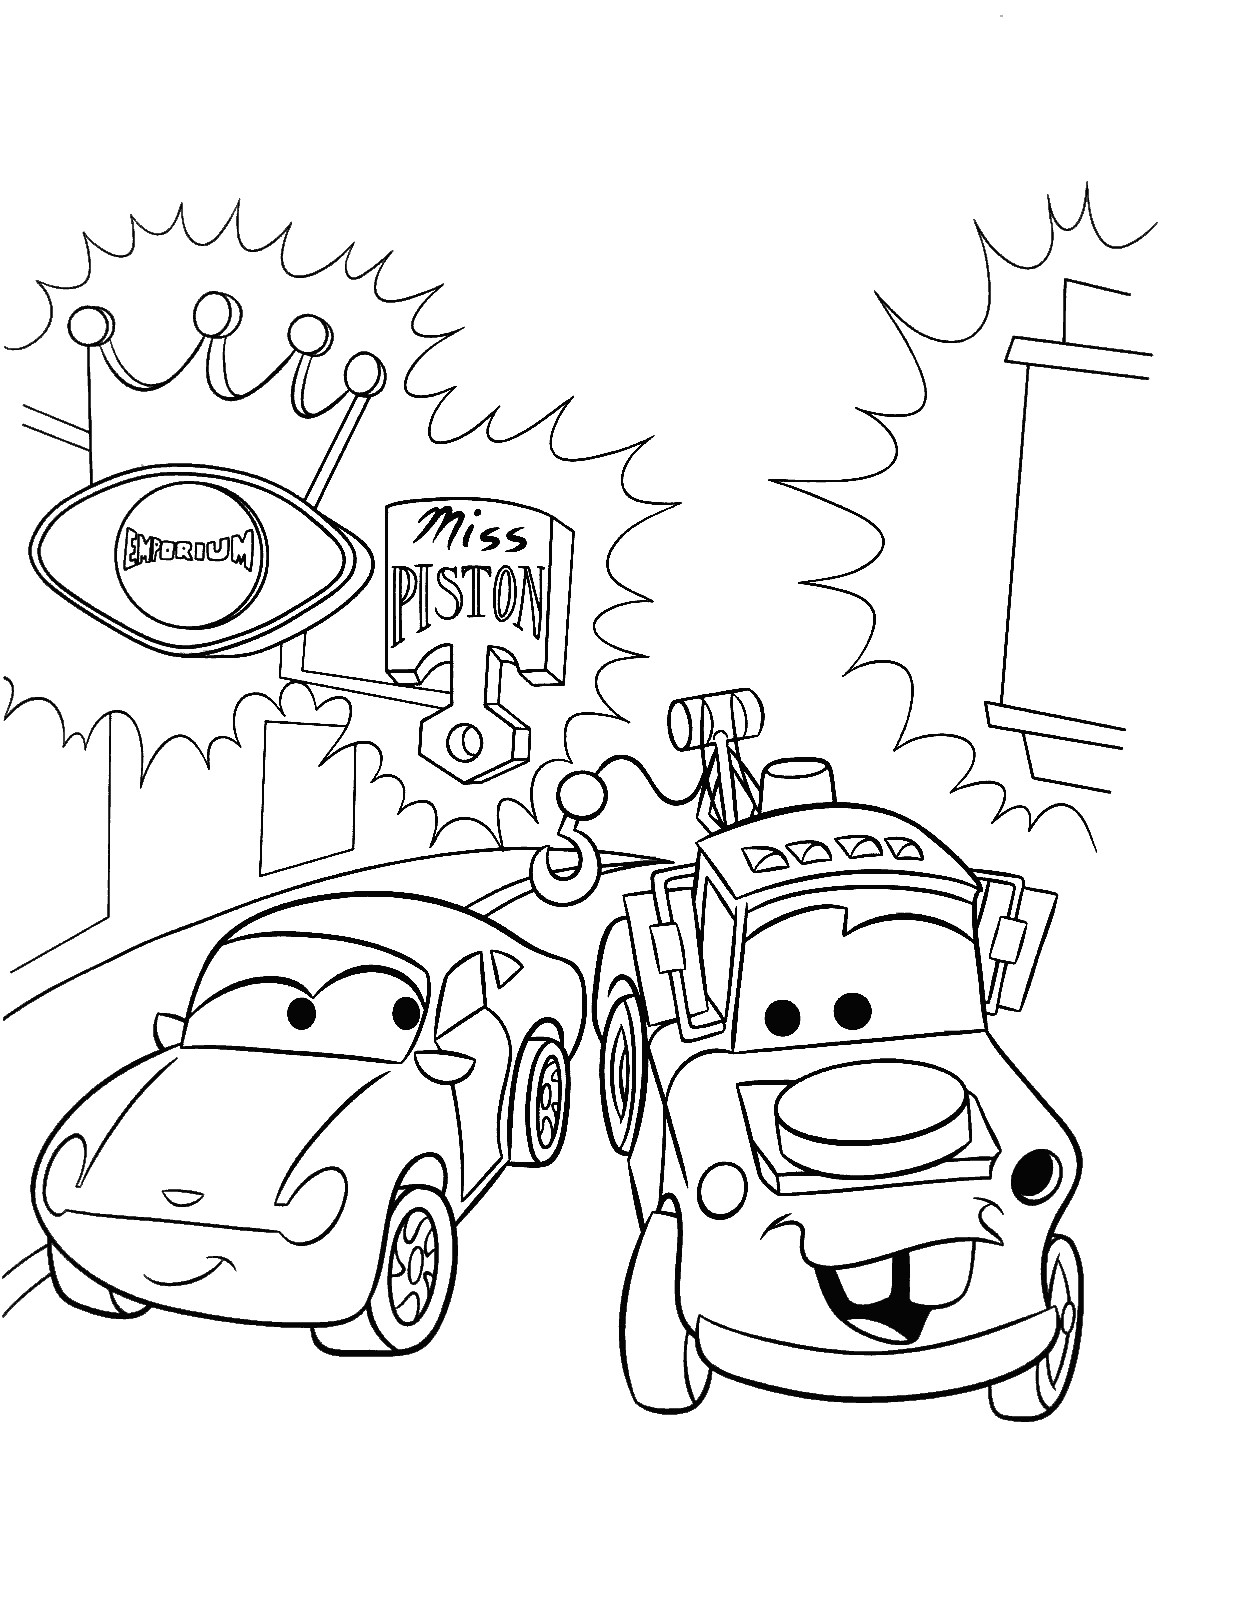 lightning mcqueen printables get this printable lightning mcqueen coloring pages 662636 lightning mcqueen printables